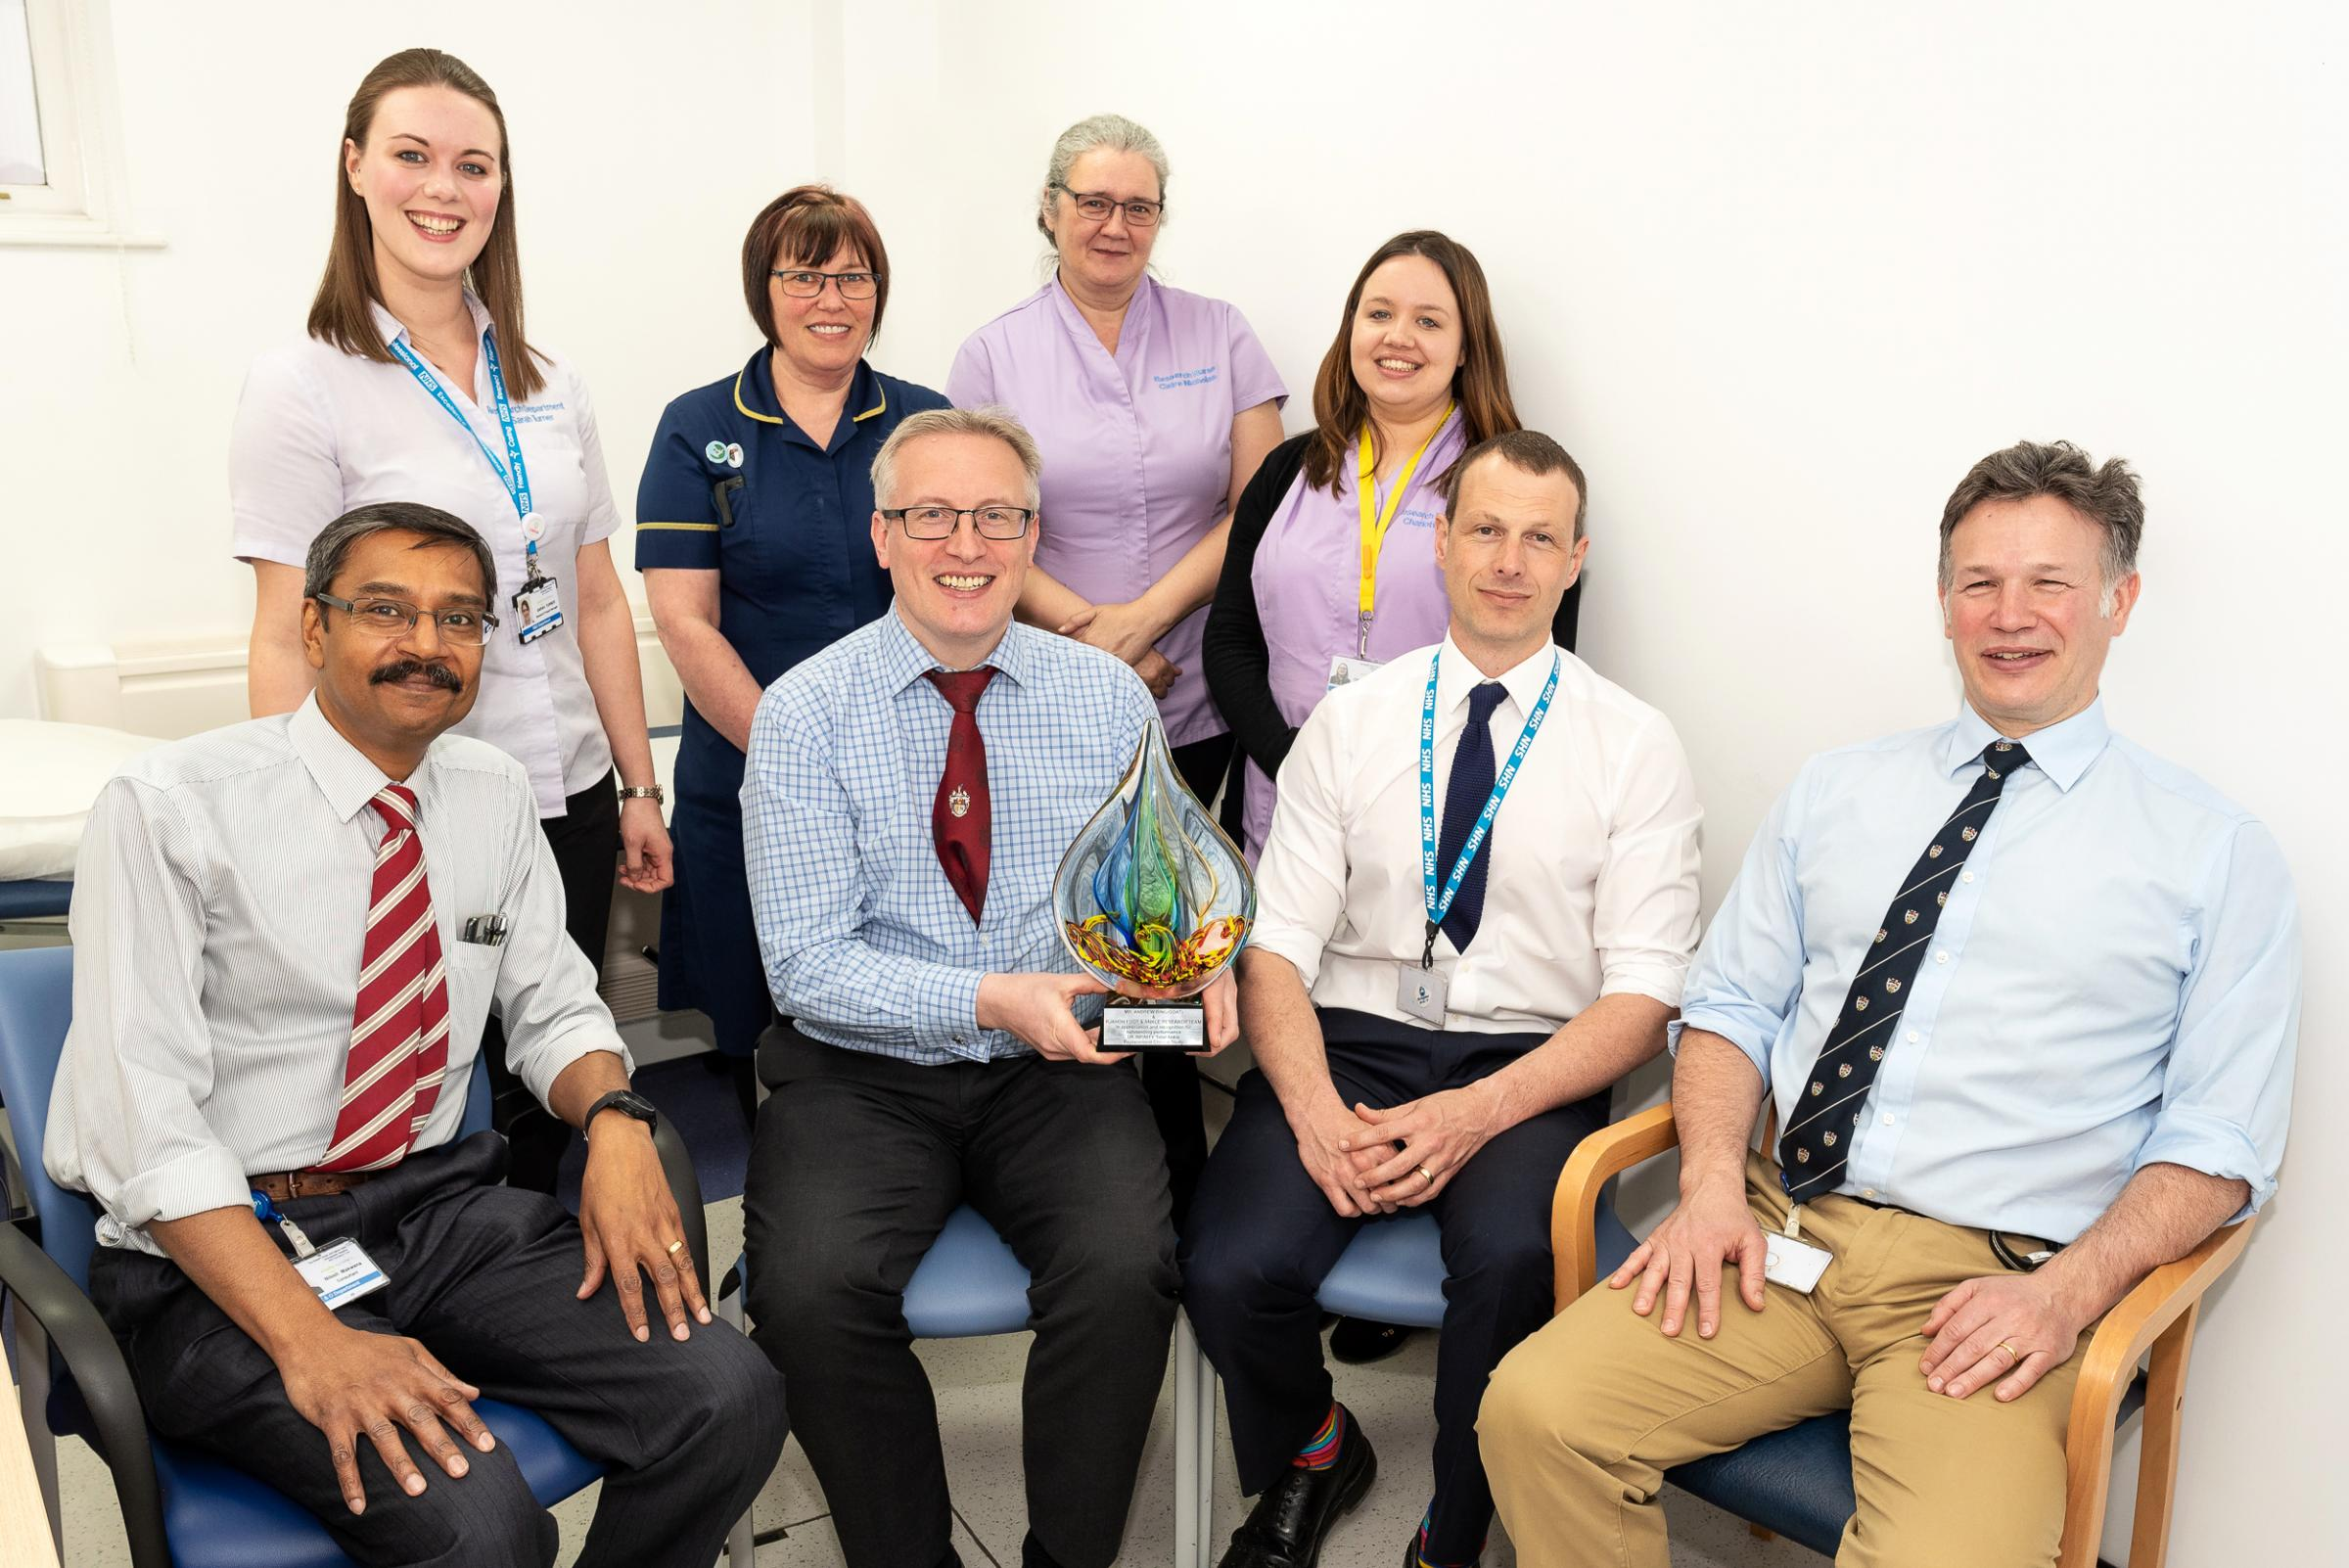 (left – right) Research Project Manager Sarah Turner, Specialist Nurse Jane Herbert, Research Nurse Claire Nicholas and Research Study Support Officer Charlotte Perkins with Consultant Orthopaedic Surgeons Nilesh Makwana, Andrew Bing, Chris Marquis